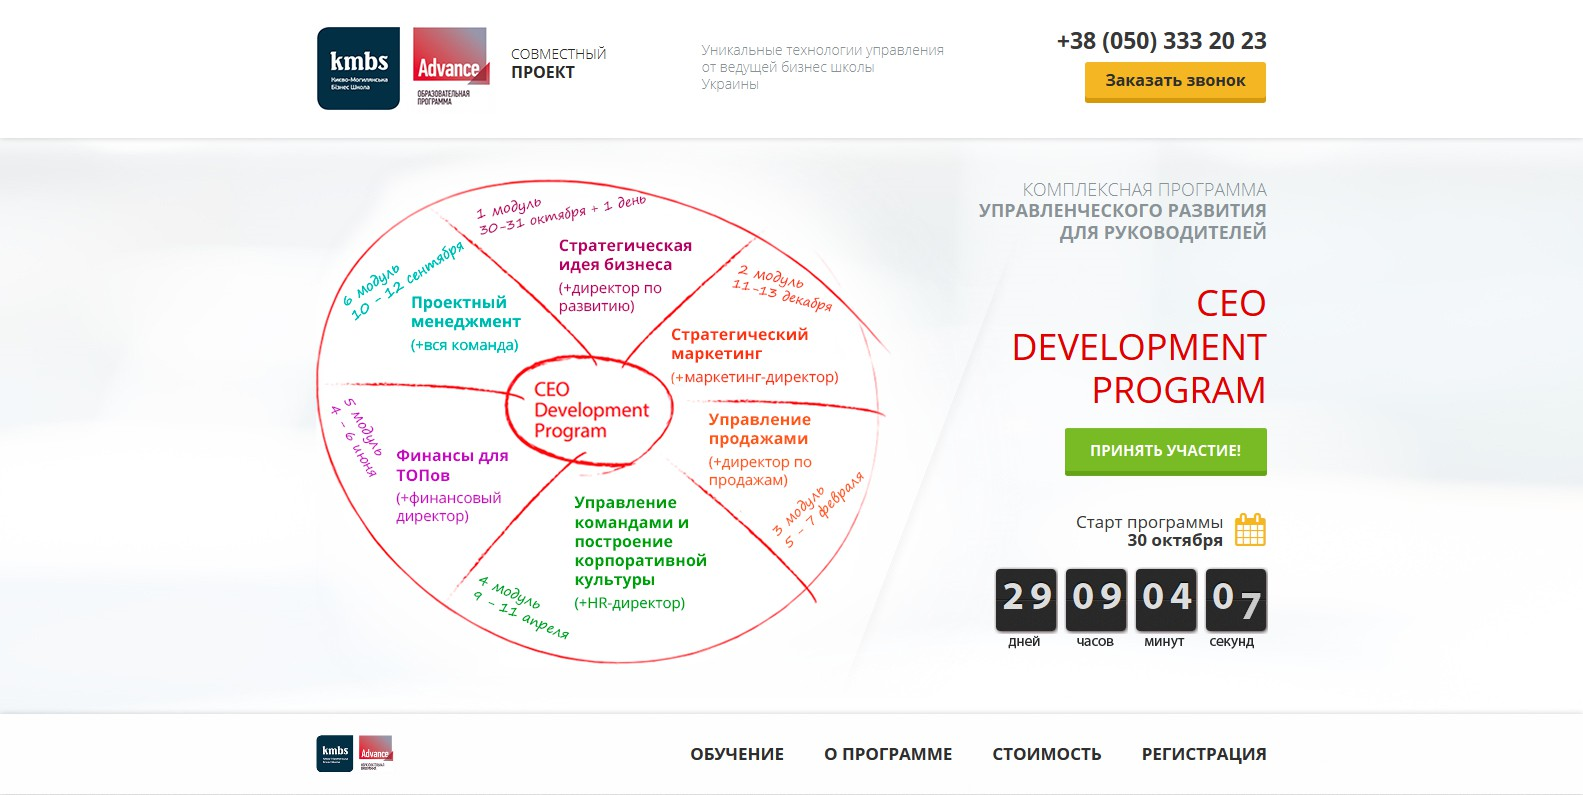 CEO Development Program (kmbs)